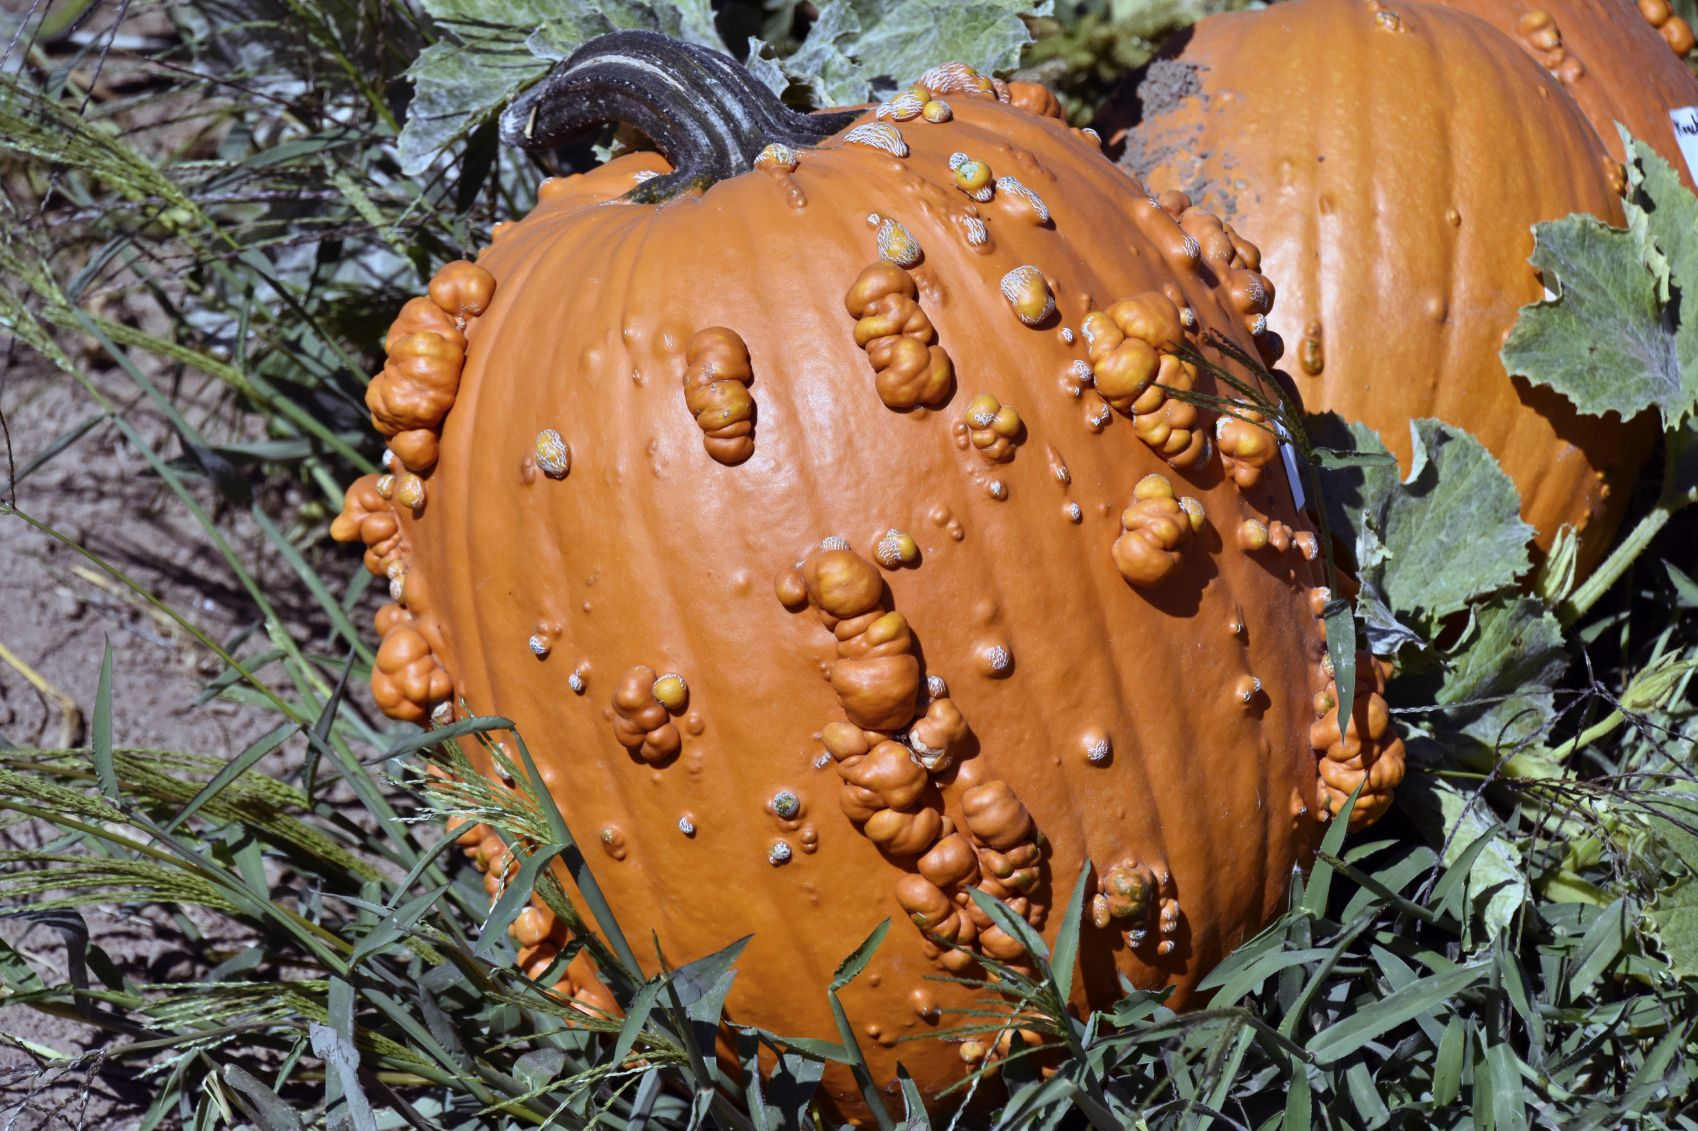 Bumpy Pumpkin Fruit Find Out What Causes Warts On